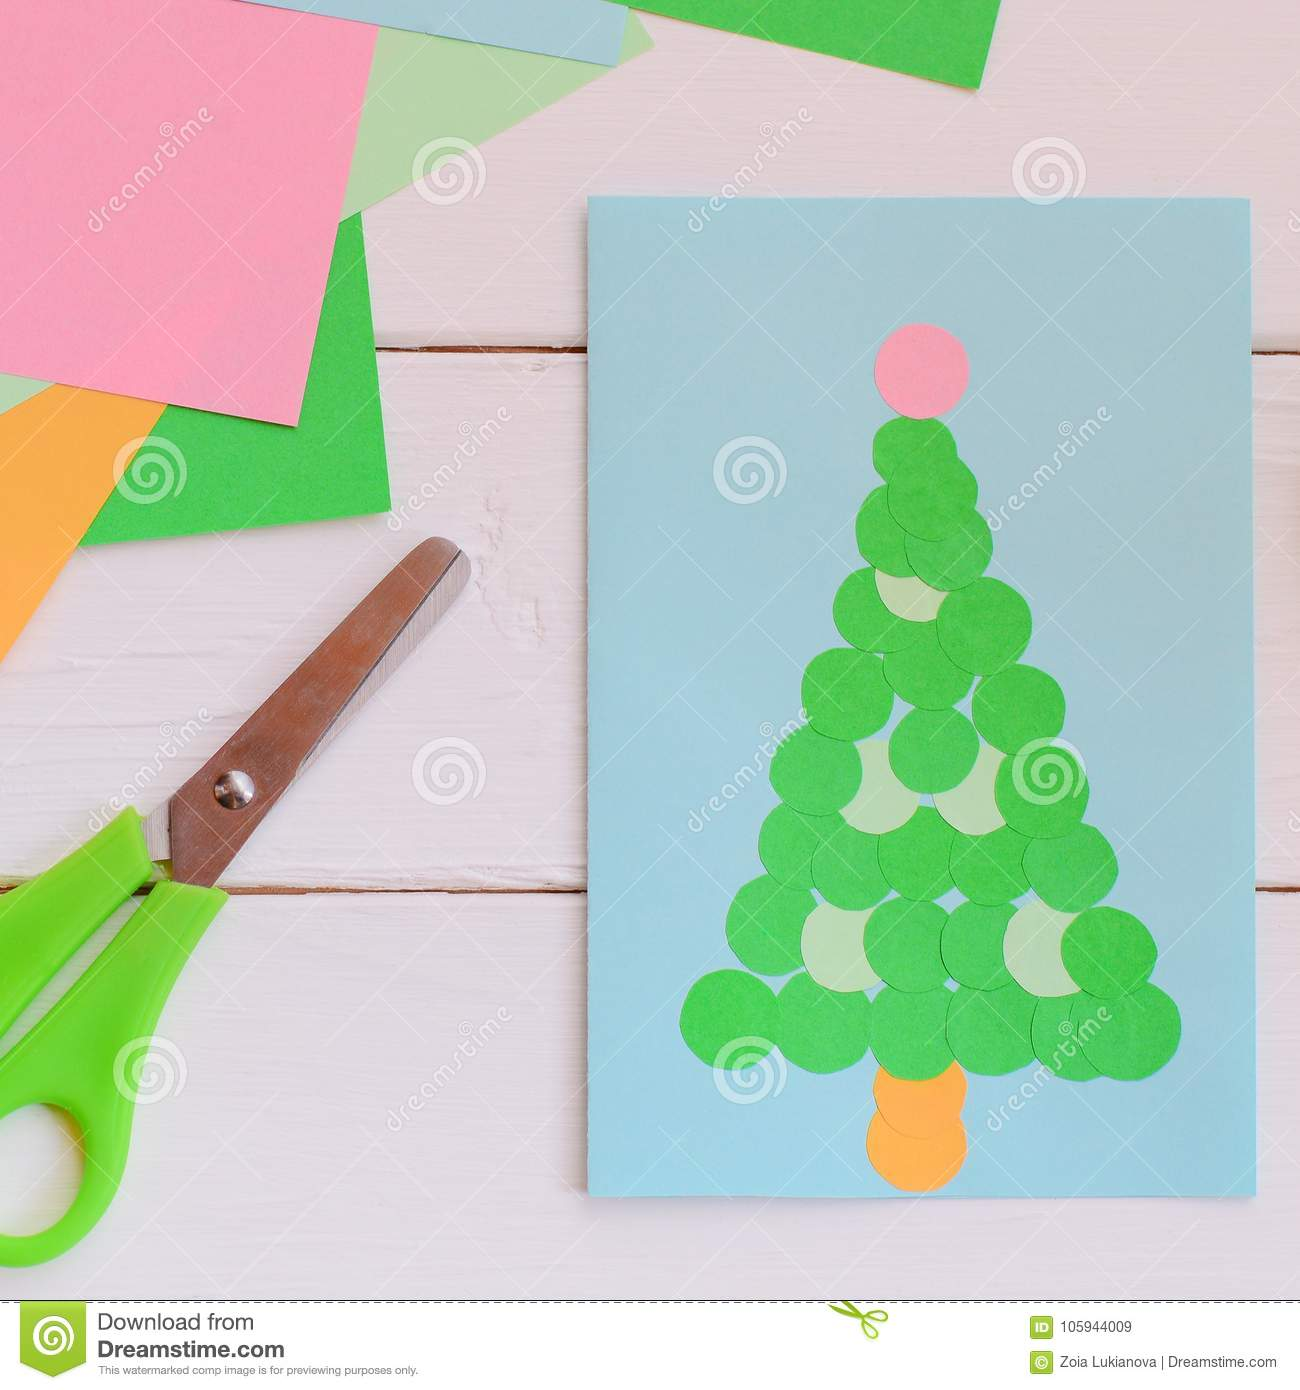 Lovely Postcard With A Christmas Tree Christmas Greeting Card Made From Colored Paper Using Glue Simple Children Handicrafts Stock Image Image Of Made Creative 105944009